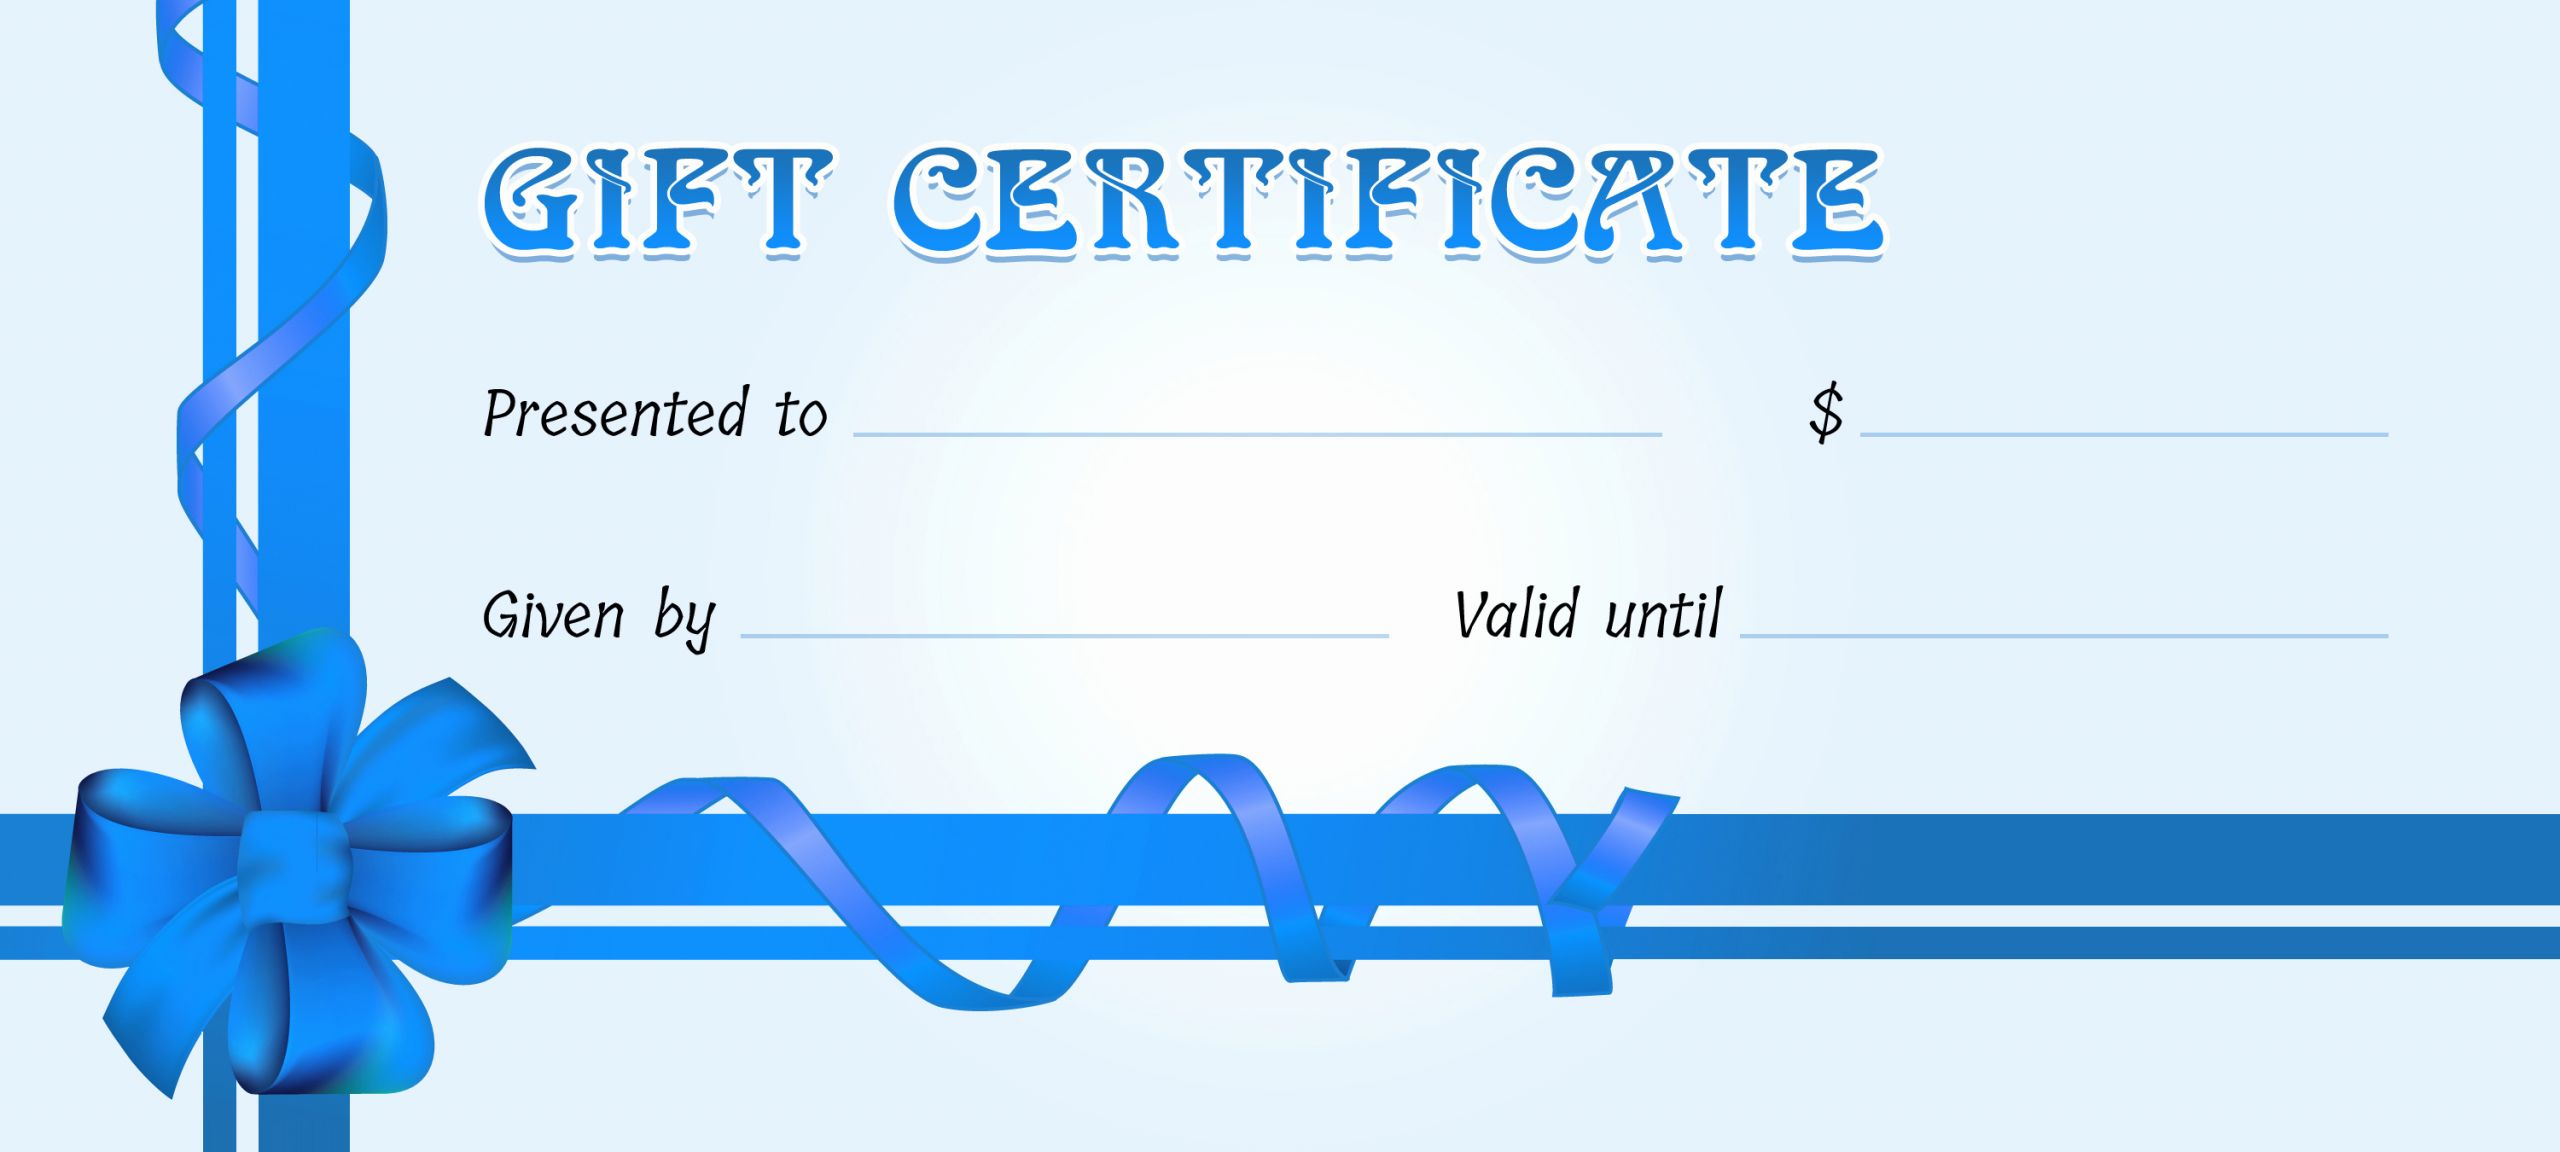 Word Template Gift Certificate Inspirational Business Gift Certificates for All events